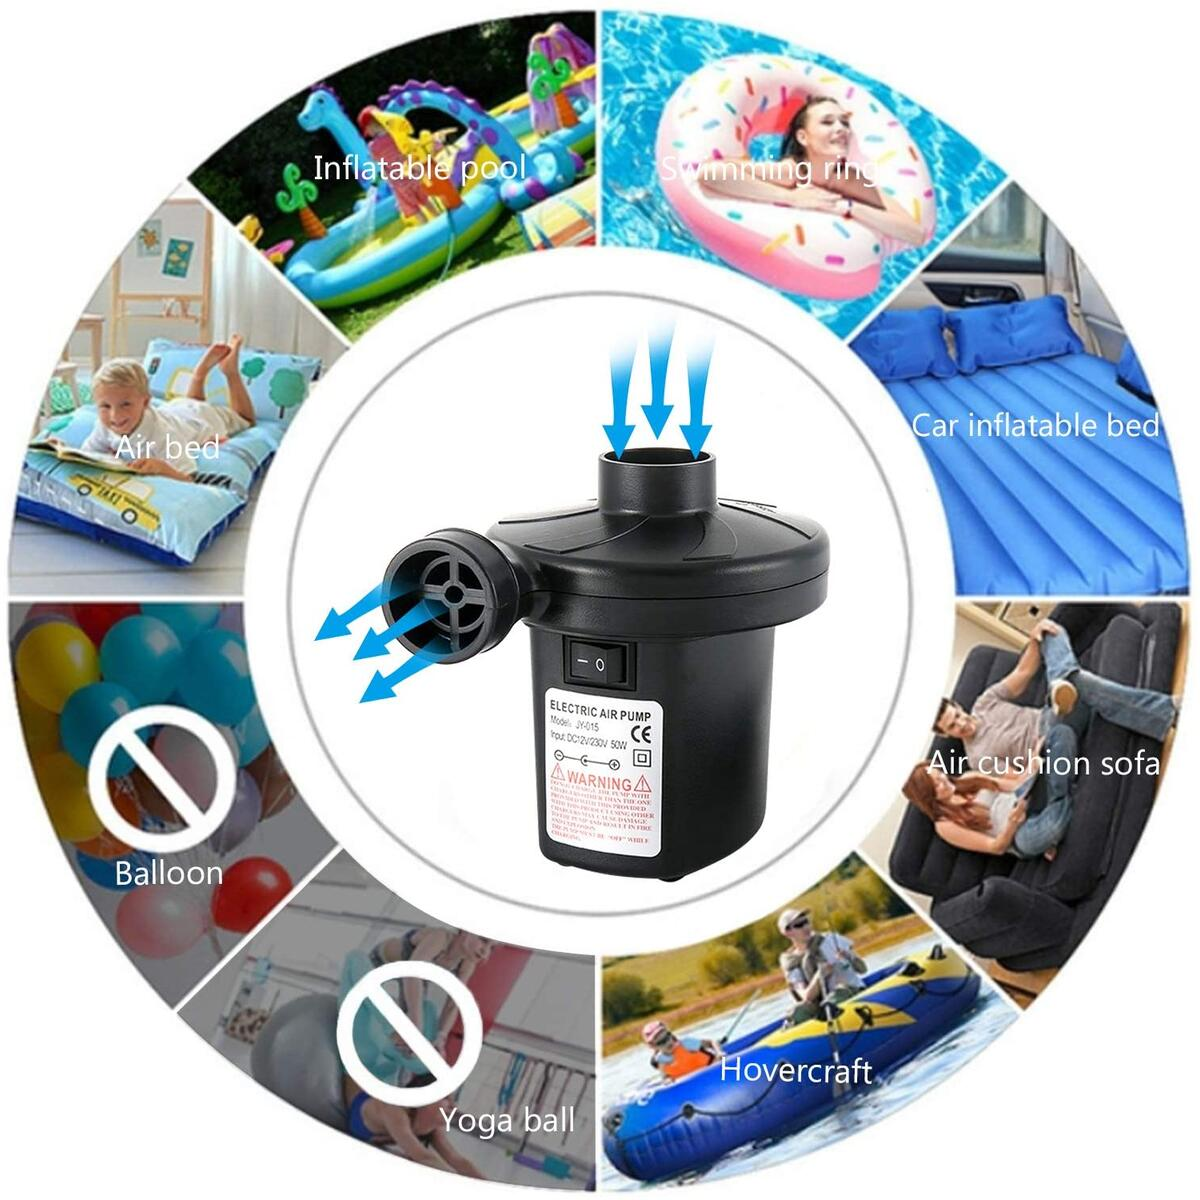 Electric Air Pump for Pool Inflatables - Air Mattress Quick-Fill Portable Pump with 3 Nozzles, Inflator/Deflator Pumps for Pool Floats, Inflatable Boats, Blow up Pool Chairs Beds (AC 110V/DC 12V)